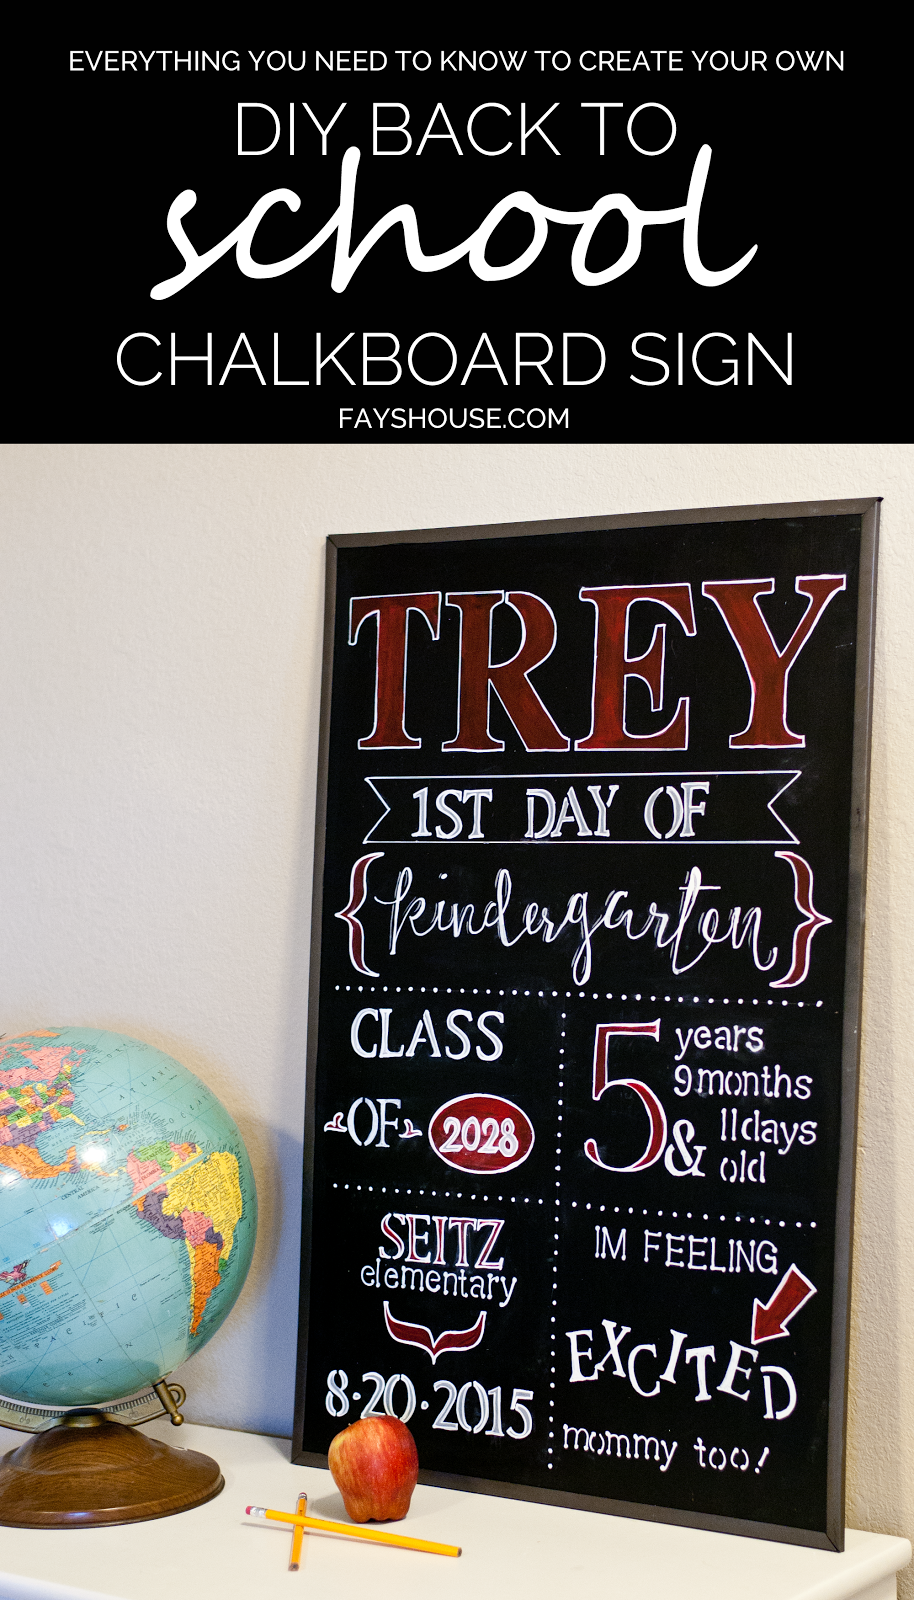 DIY Back to School Chalkboard Sign from Fay's House